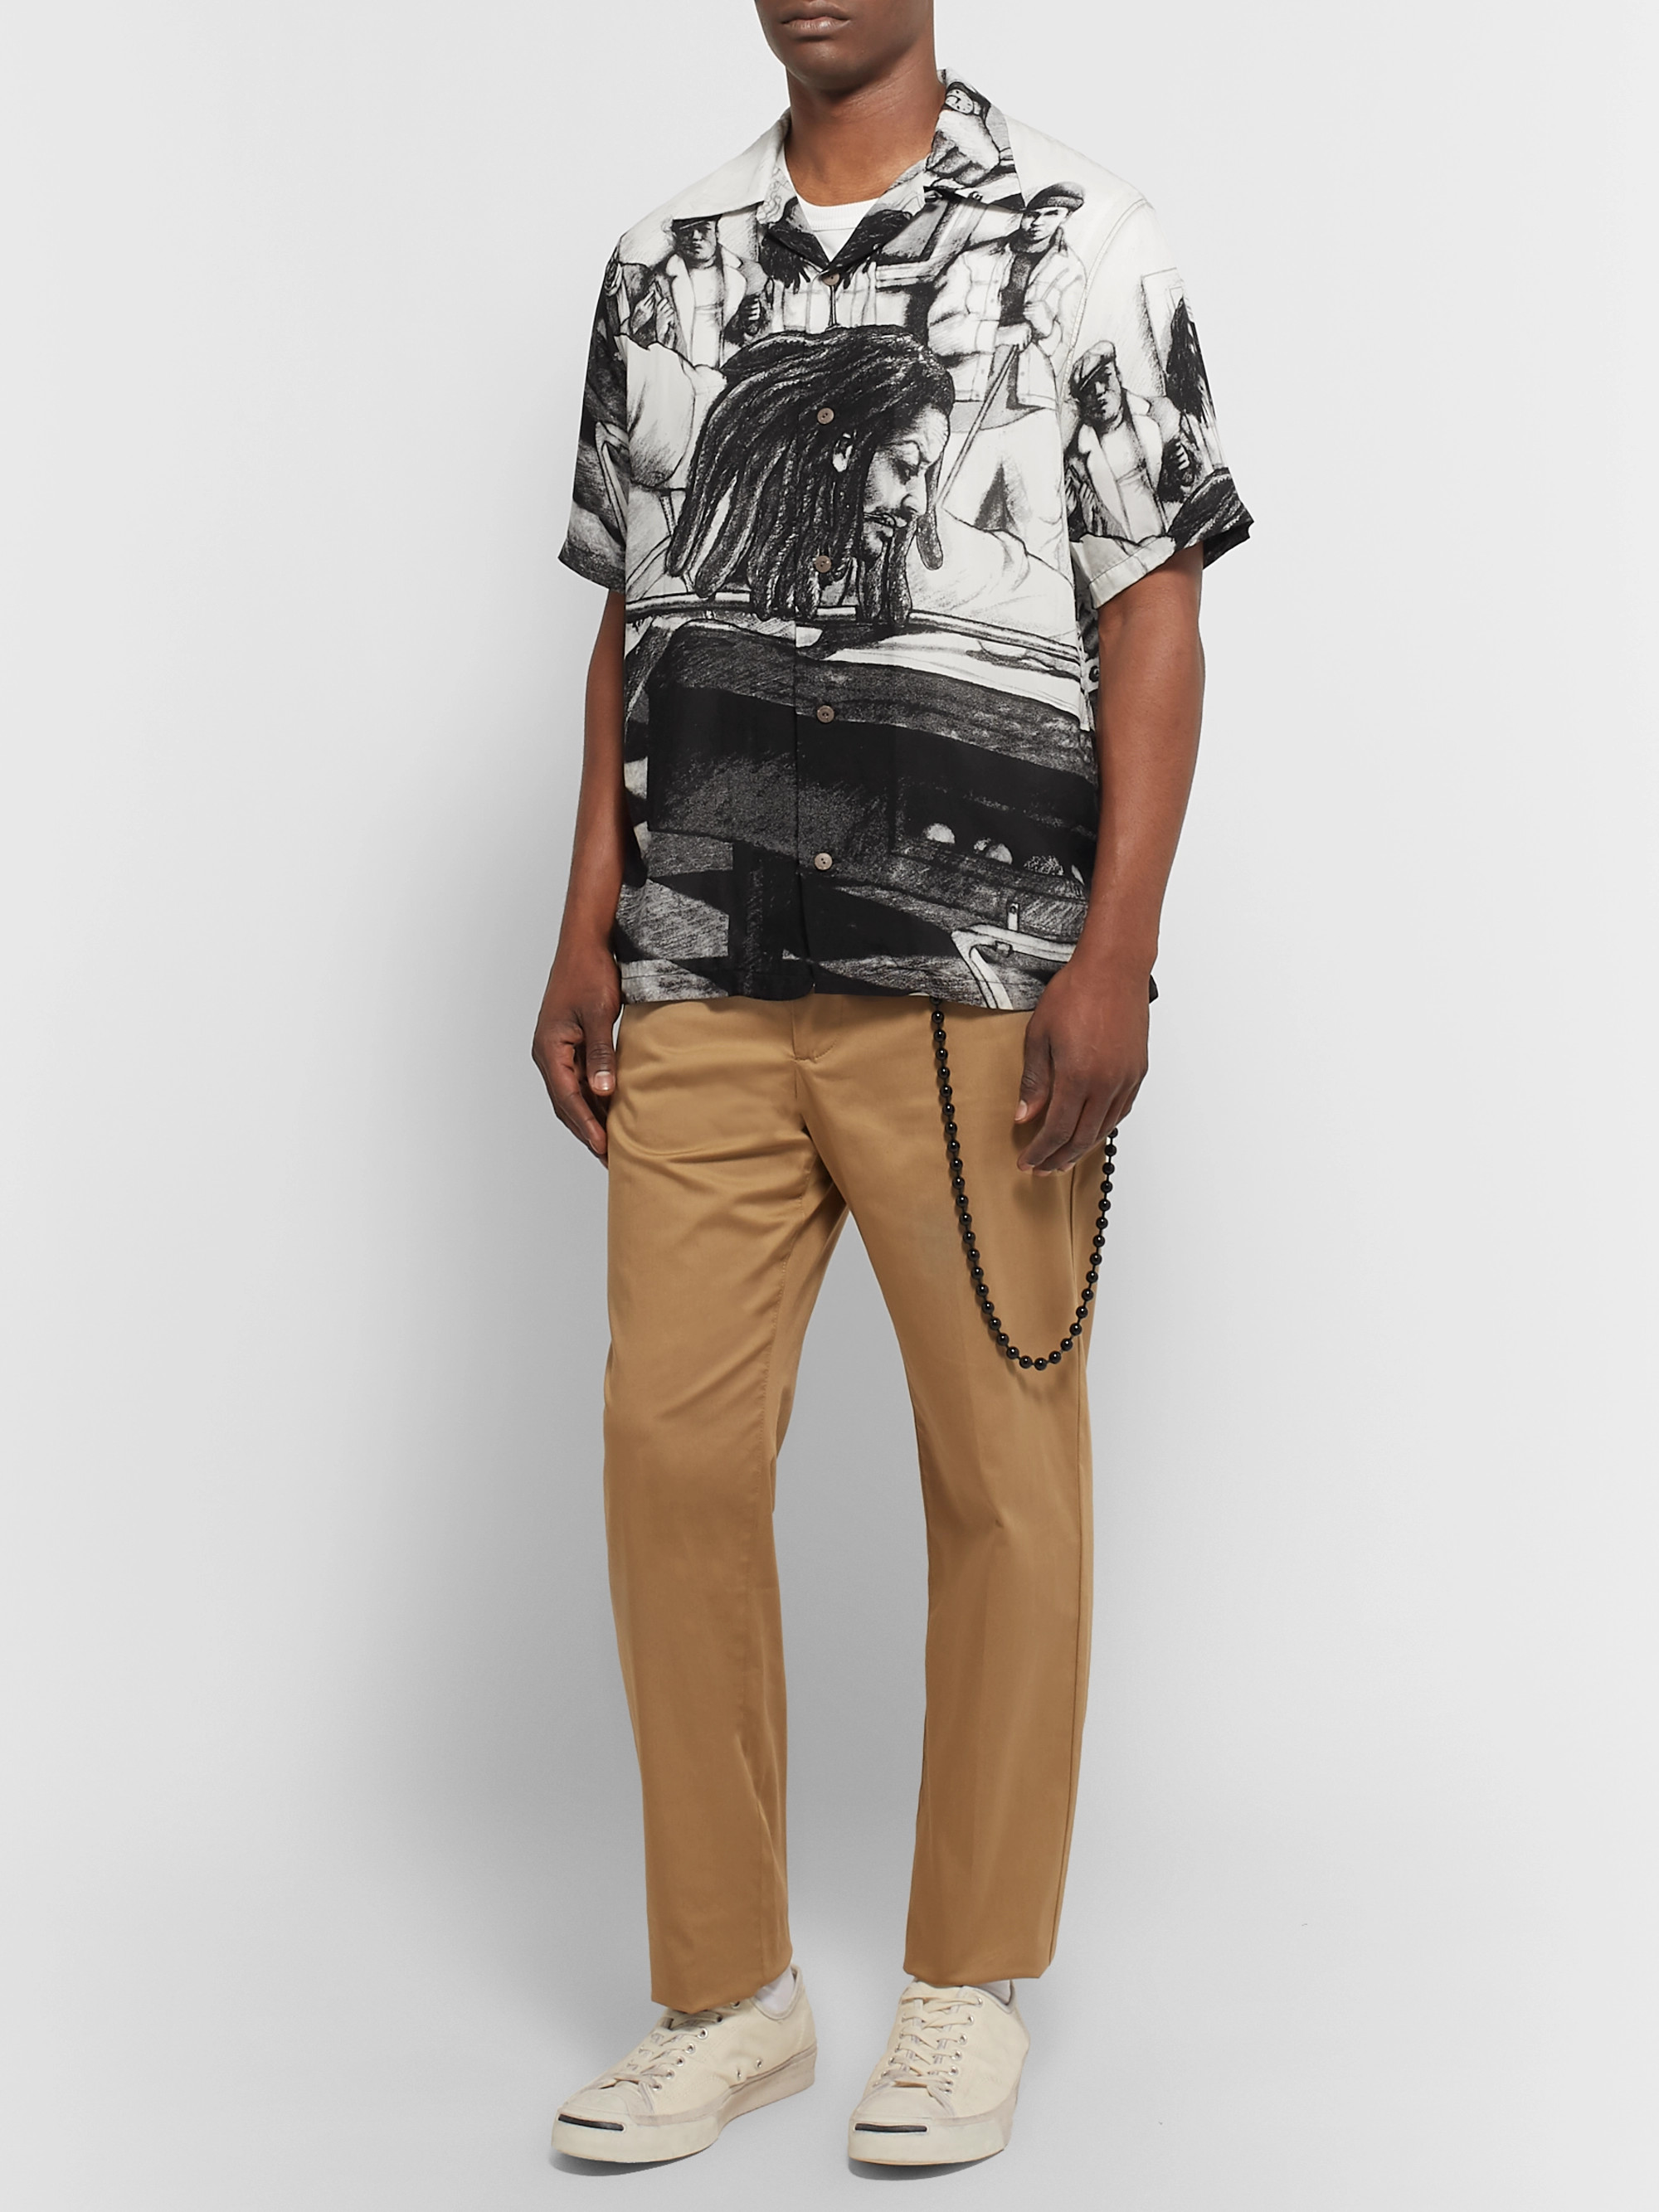 KAPITAL + Bob Marley Camp-Collar Printed Woven Shirt